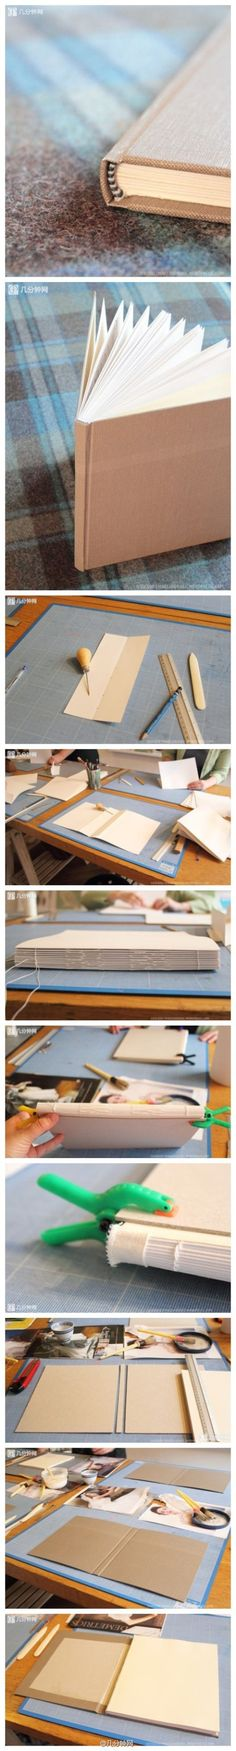 Bookbinding tutorial